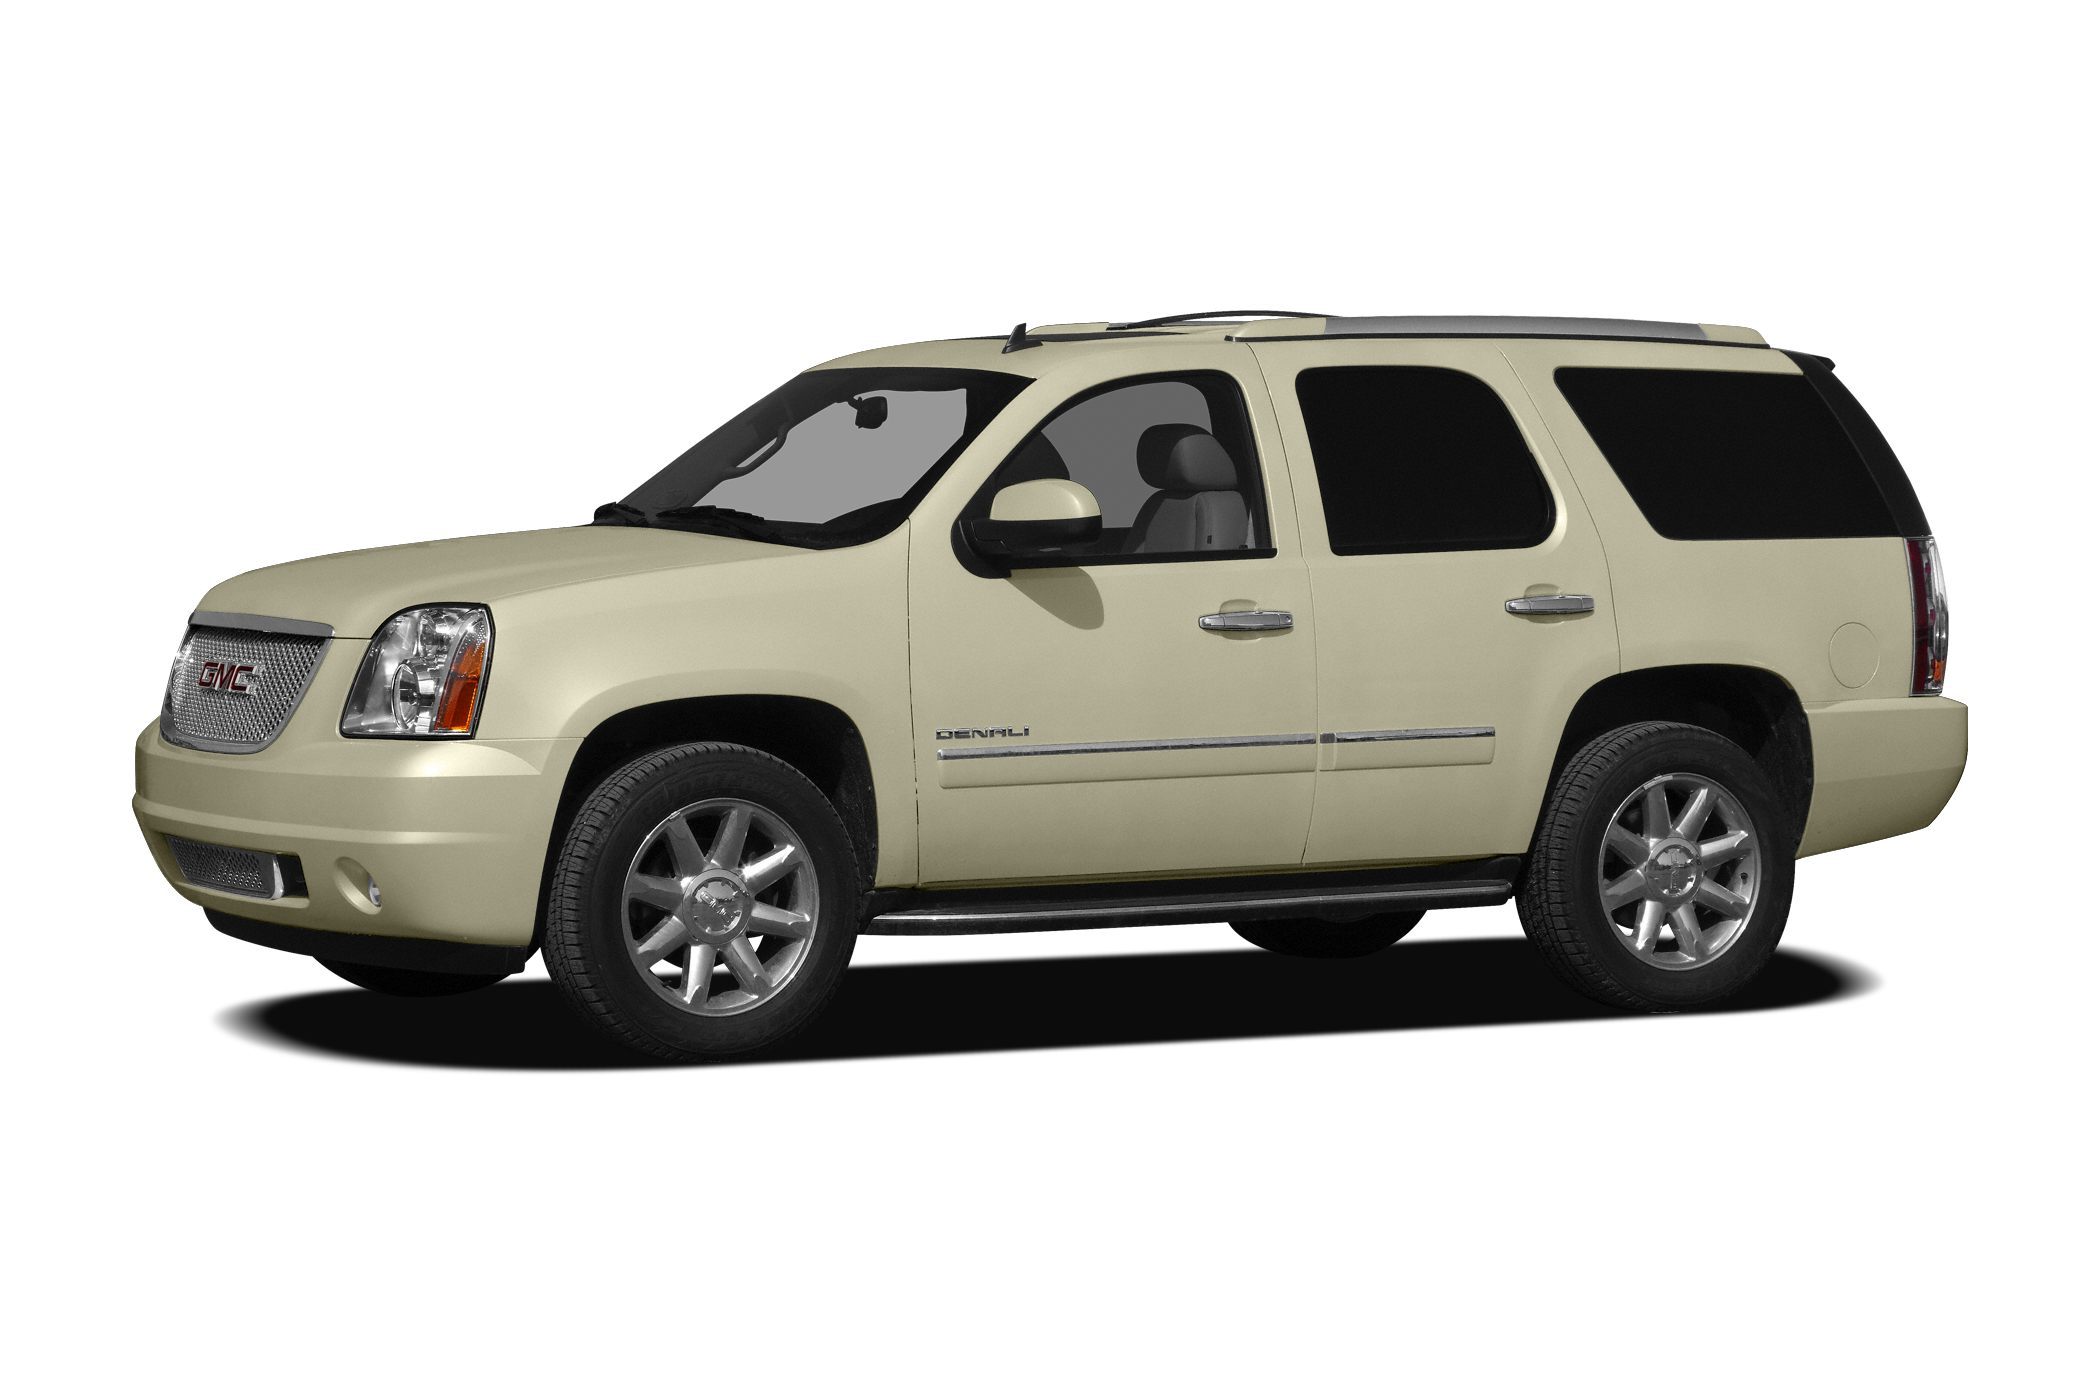 2010 GMC Yukon Denali SUV for sale in Kansas City for $31,000 with 71,502 miles.